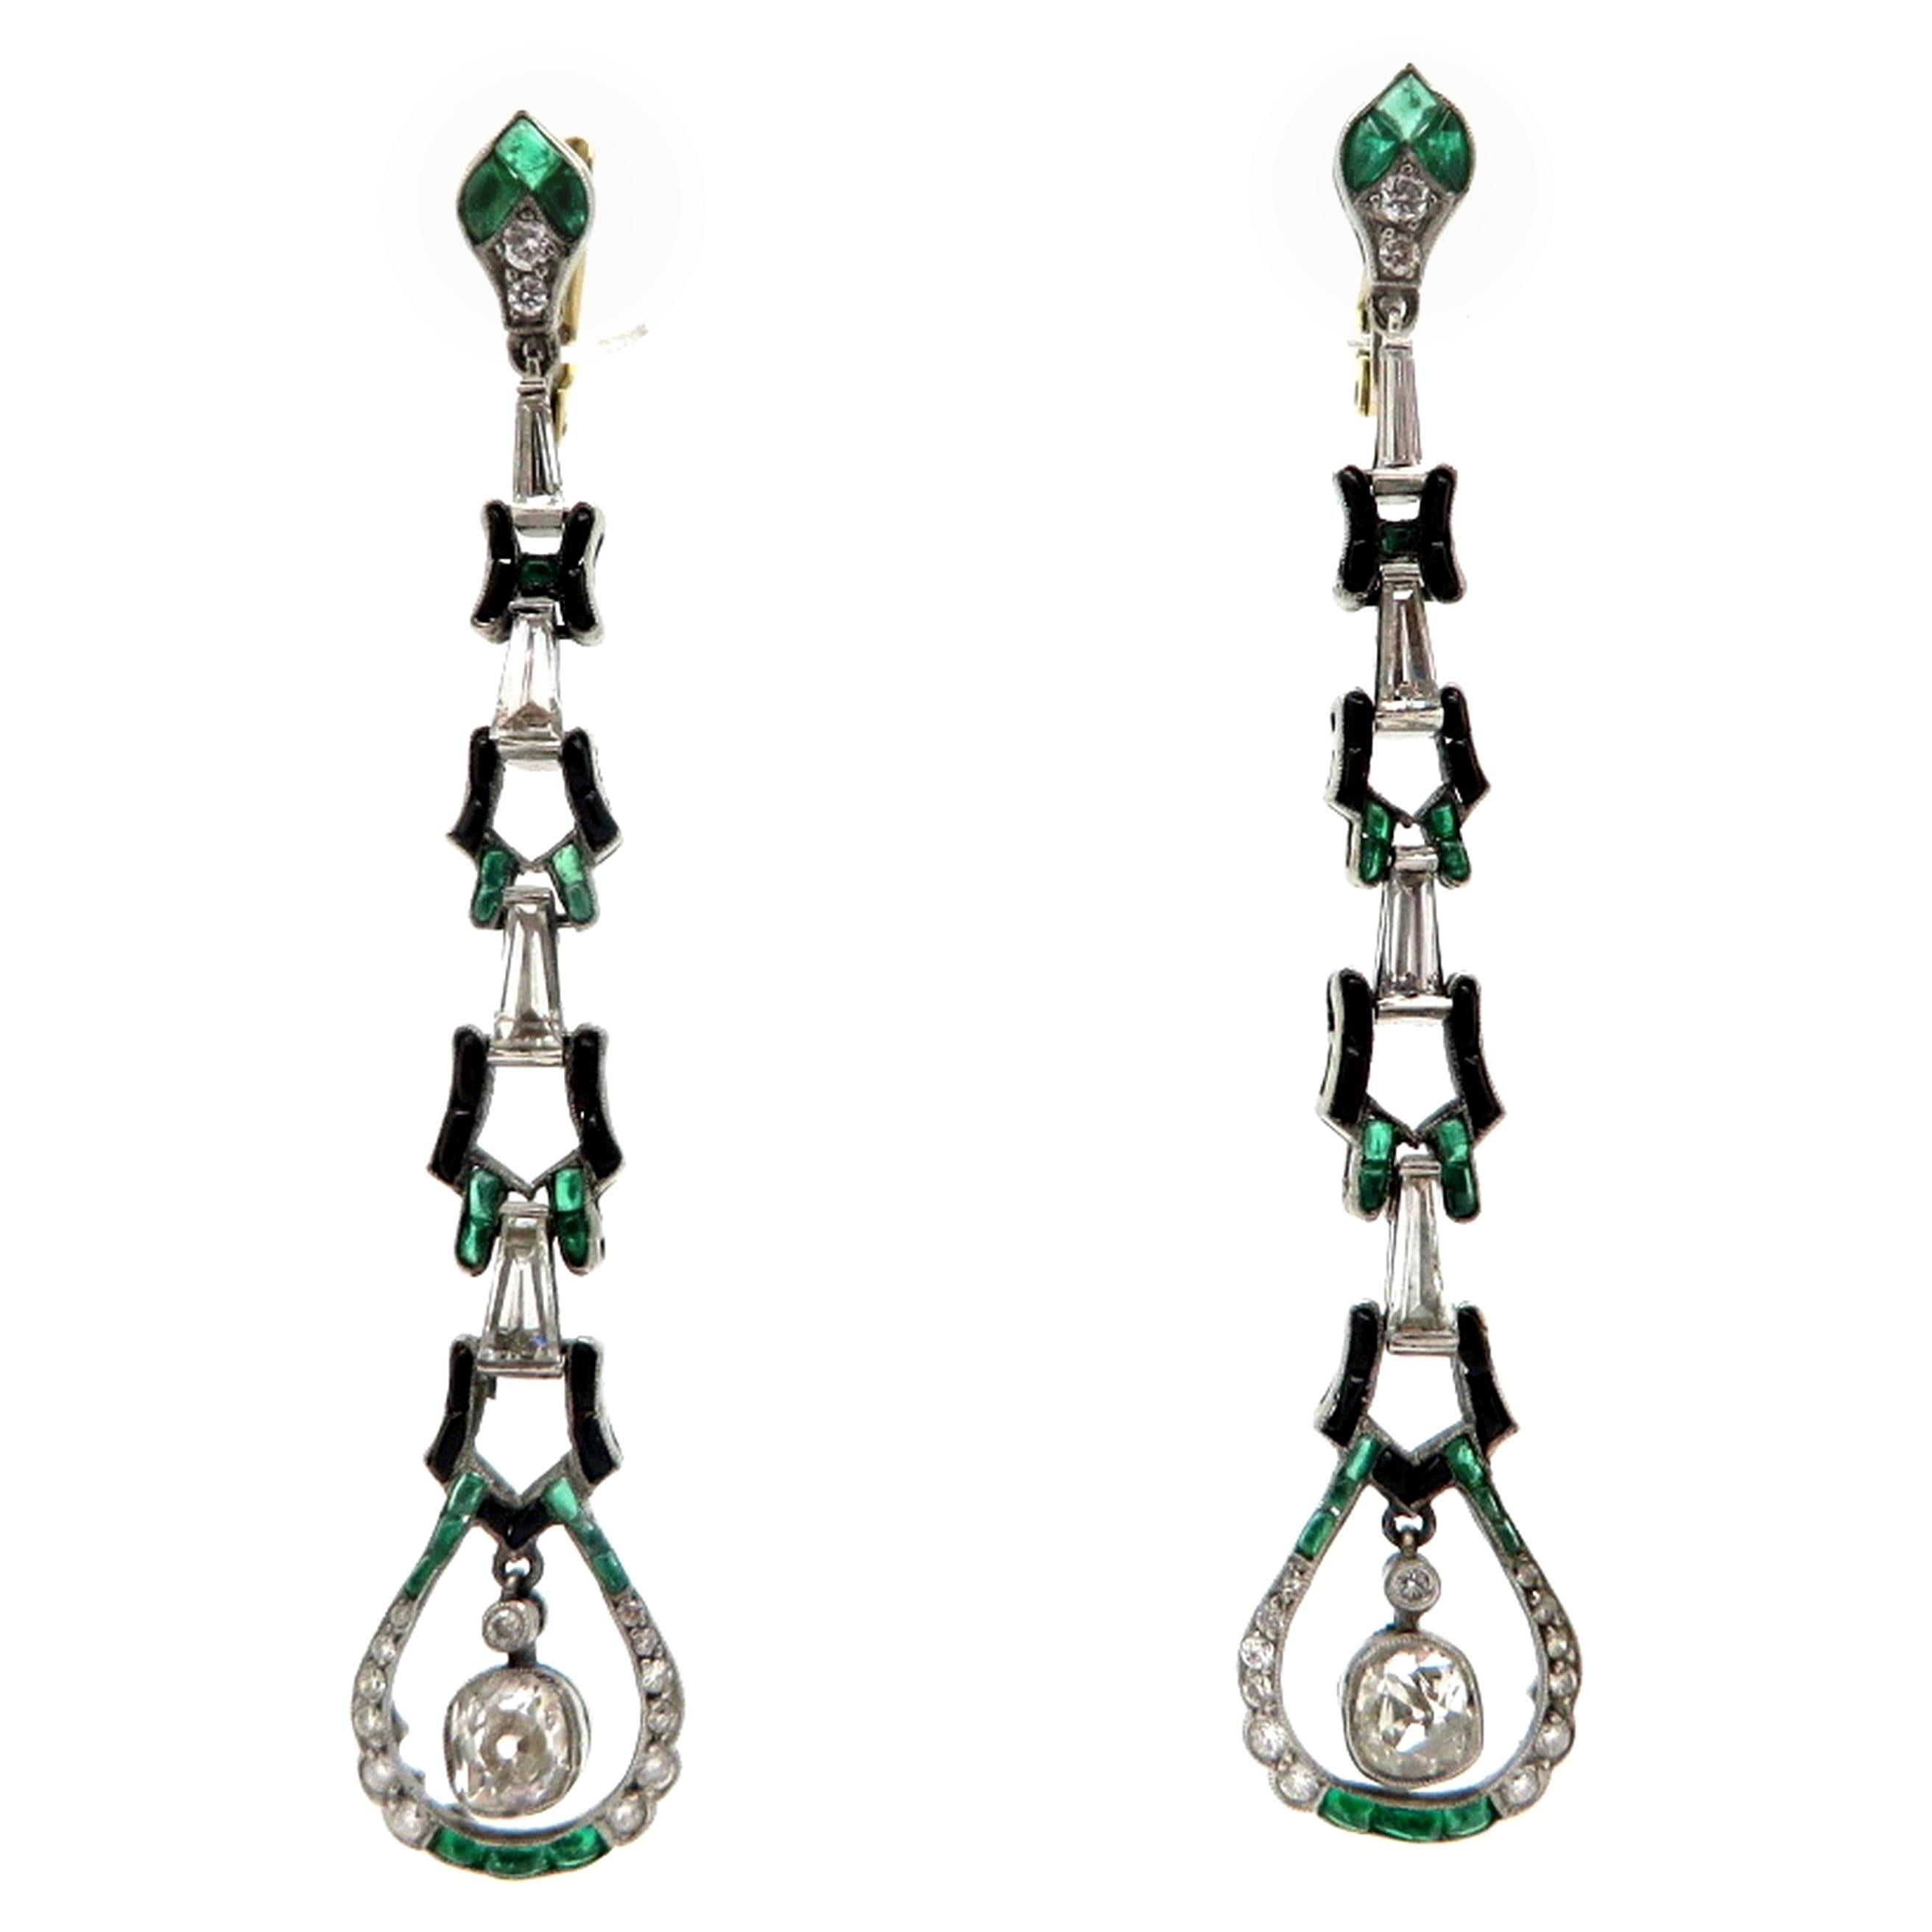 Estate Art Deco Style Platinum and 18K Diamond, Emerald and Onyx Dangle Earrings